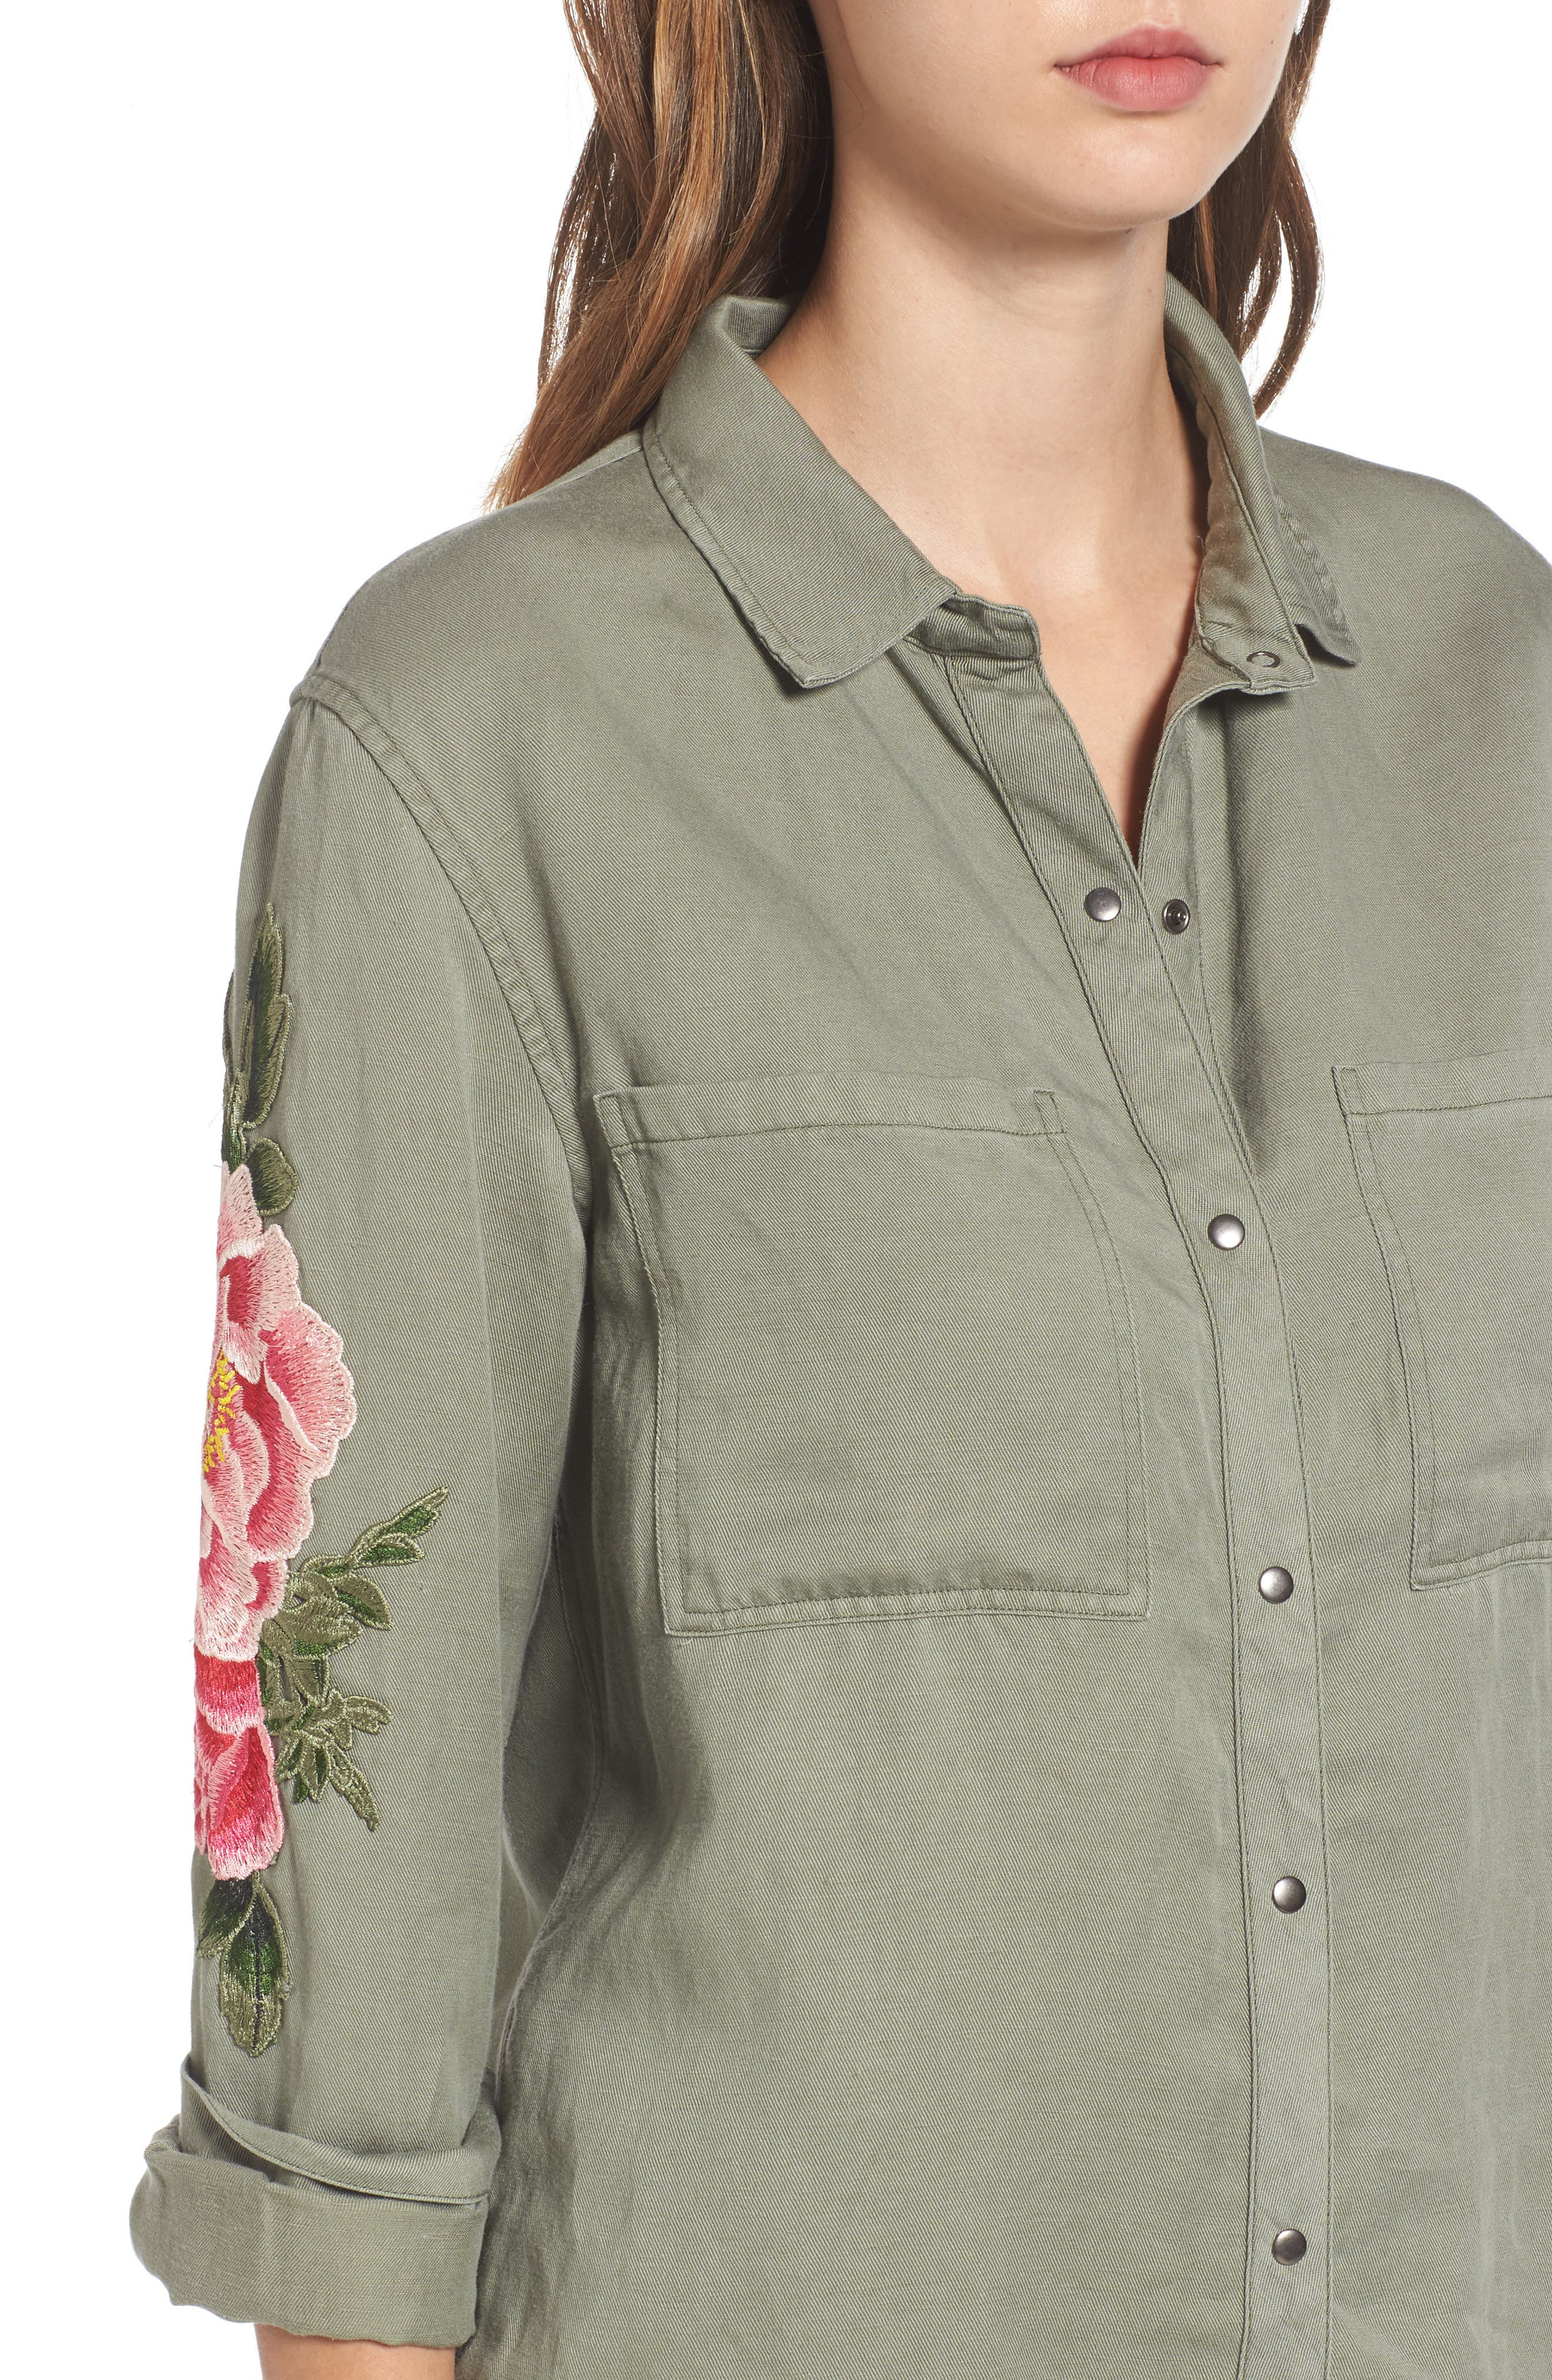 Marcel Embroidered Shirt,                             Alternate thumbnail 4, color,                             302